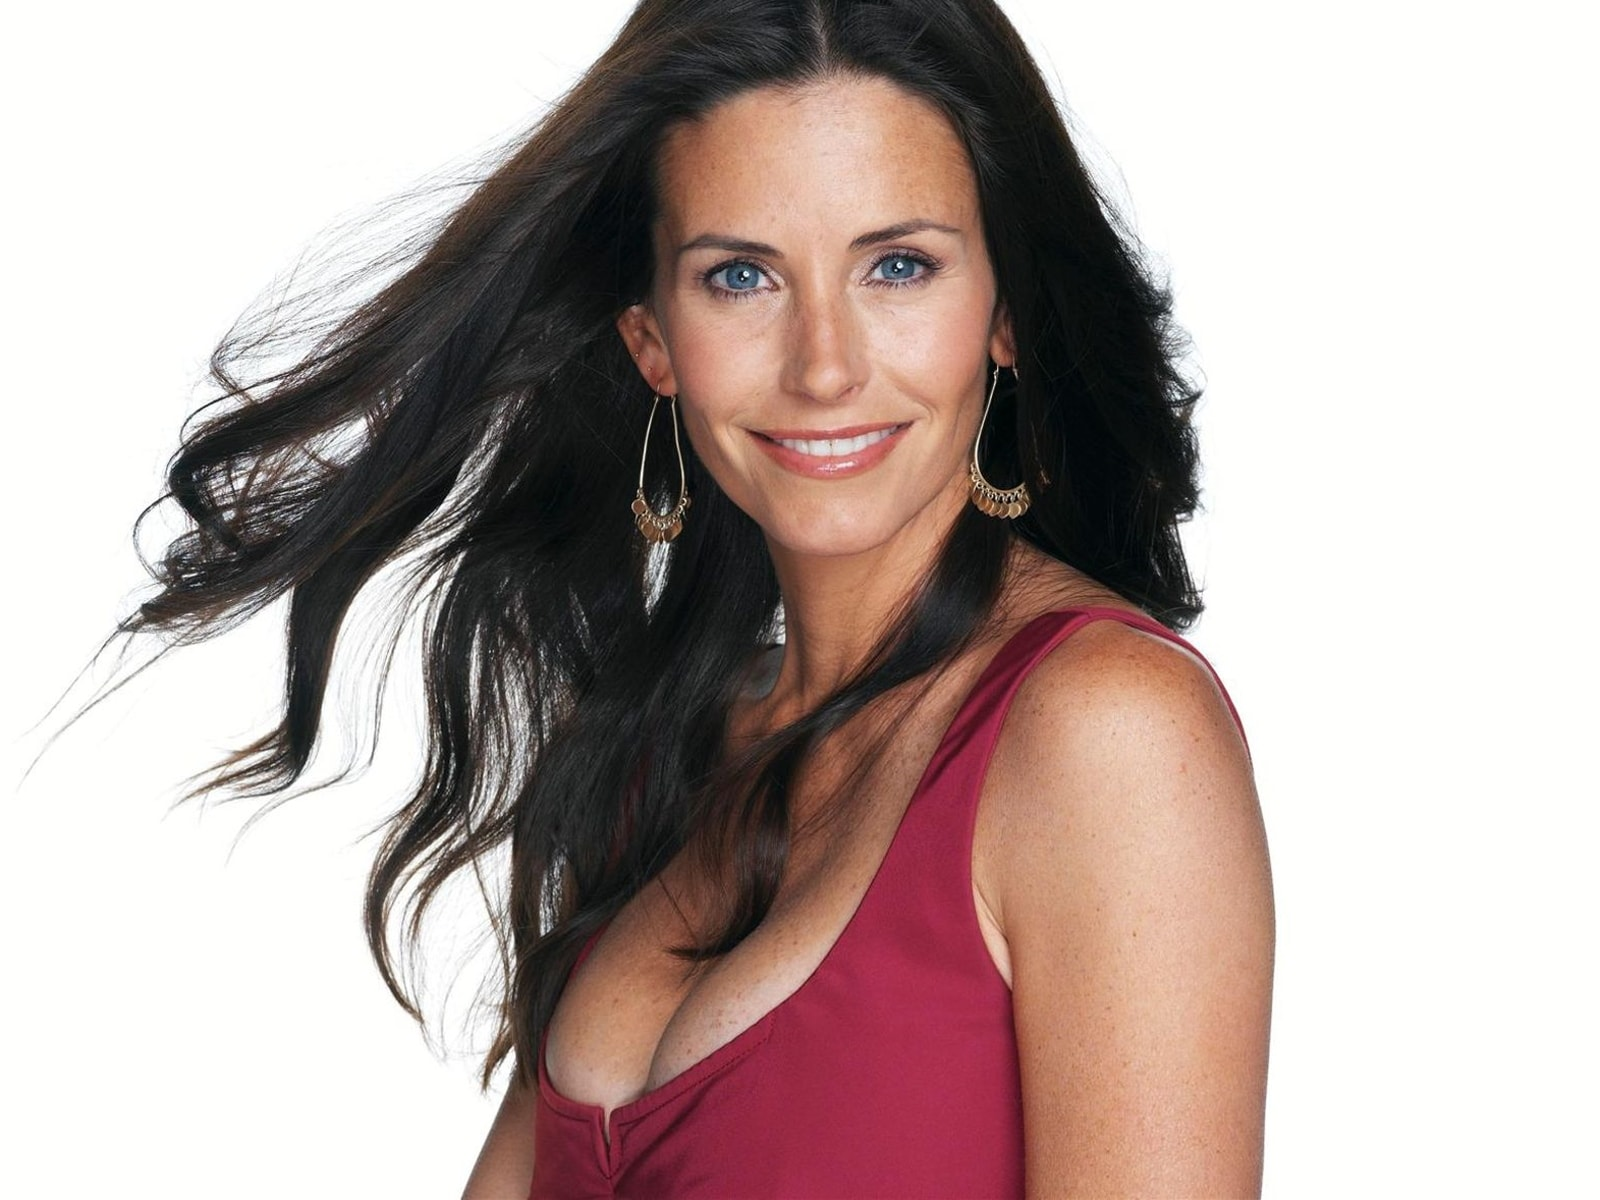 Courteney Cox Background